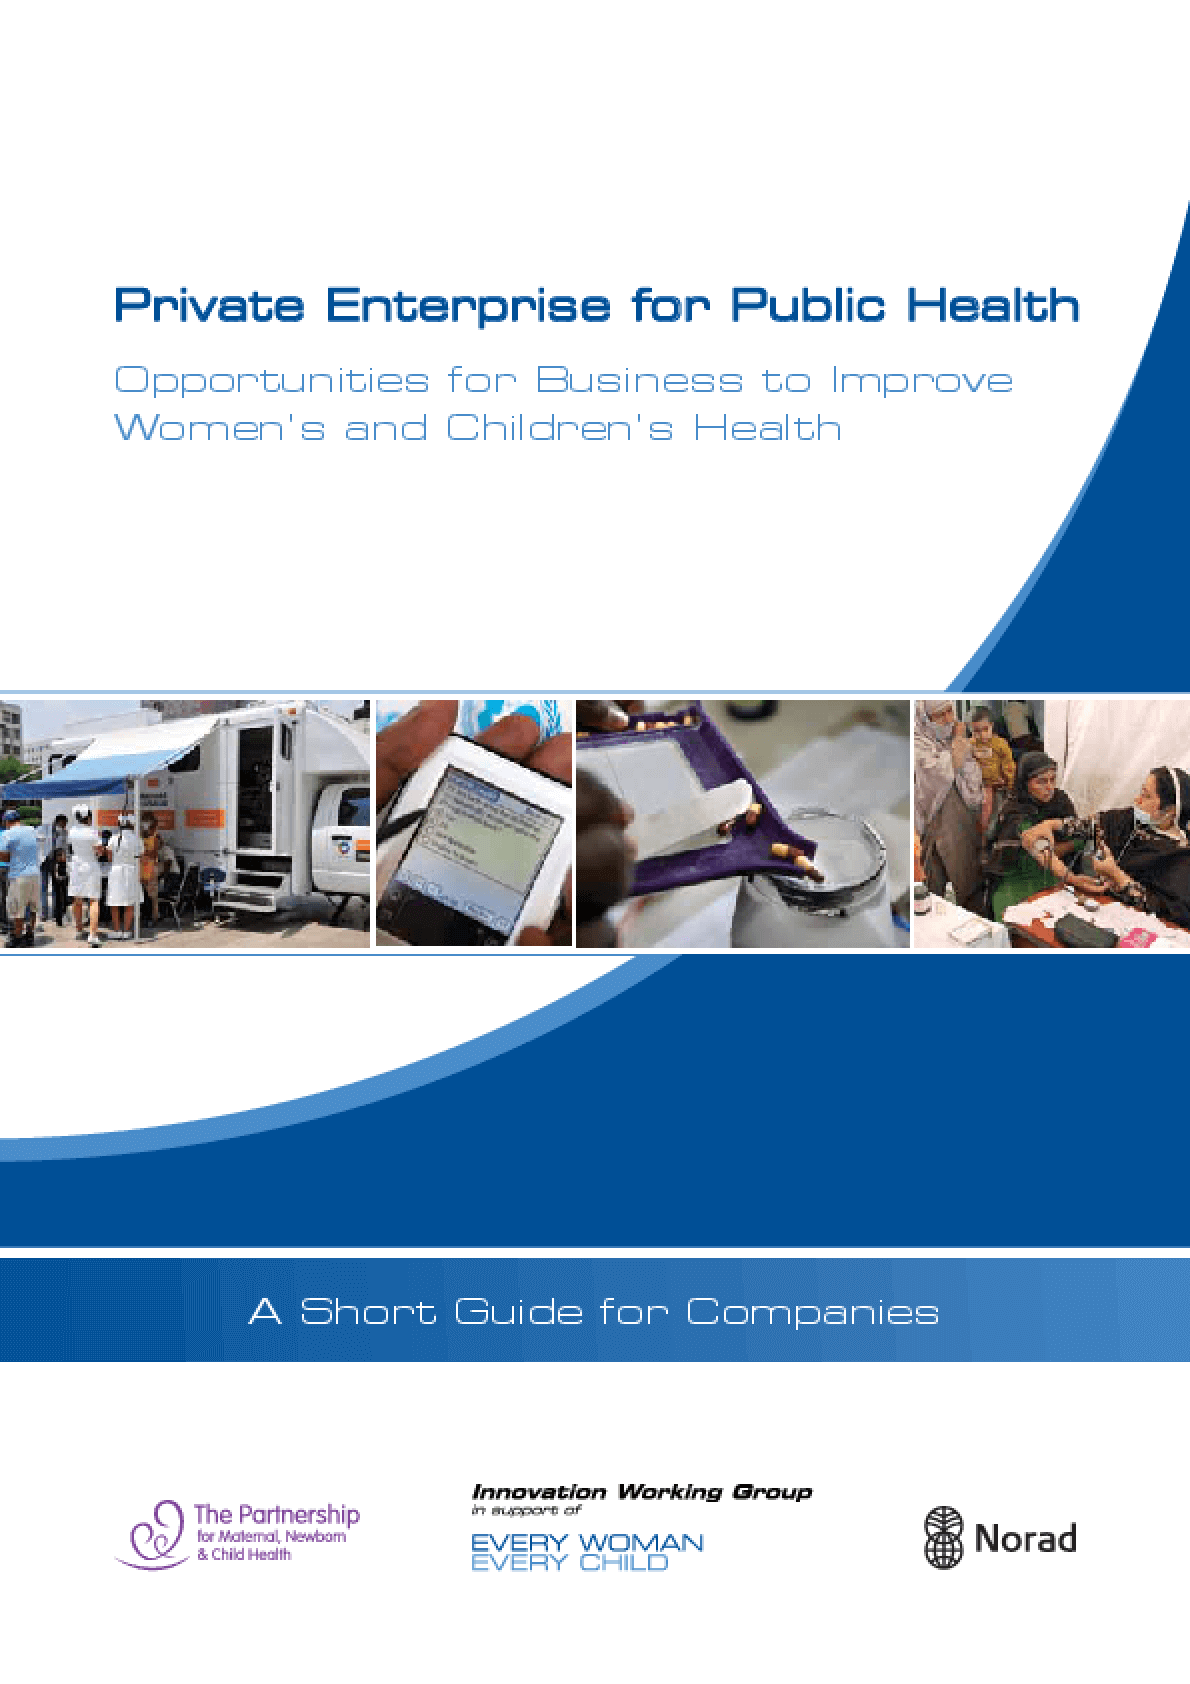 Private Enterprise for Public Health: Opportunities for Business to Improve Women's and Children's Health